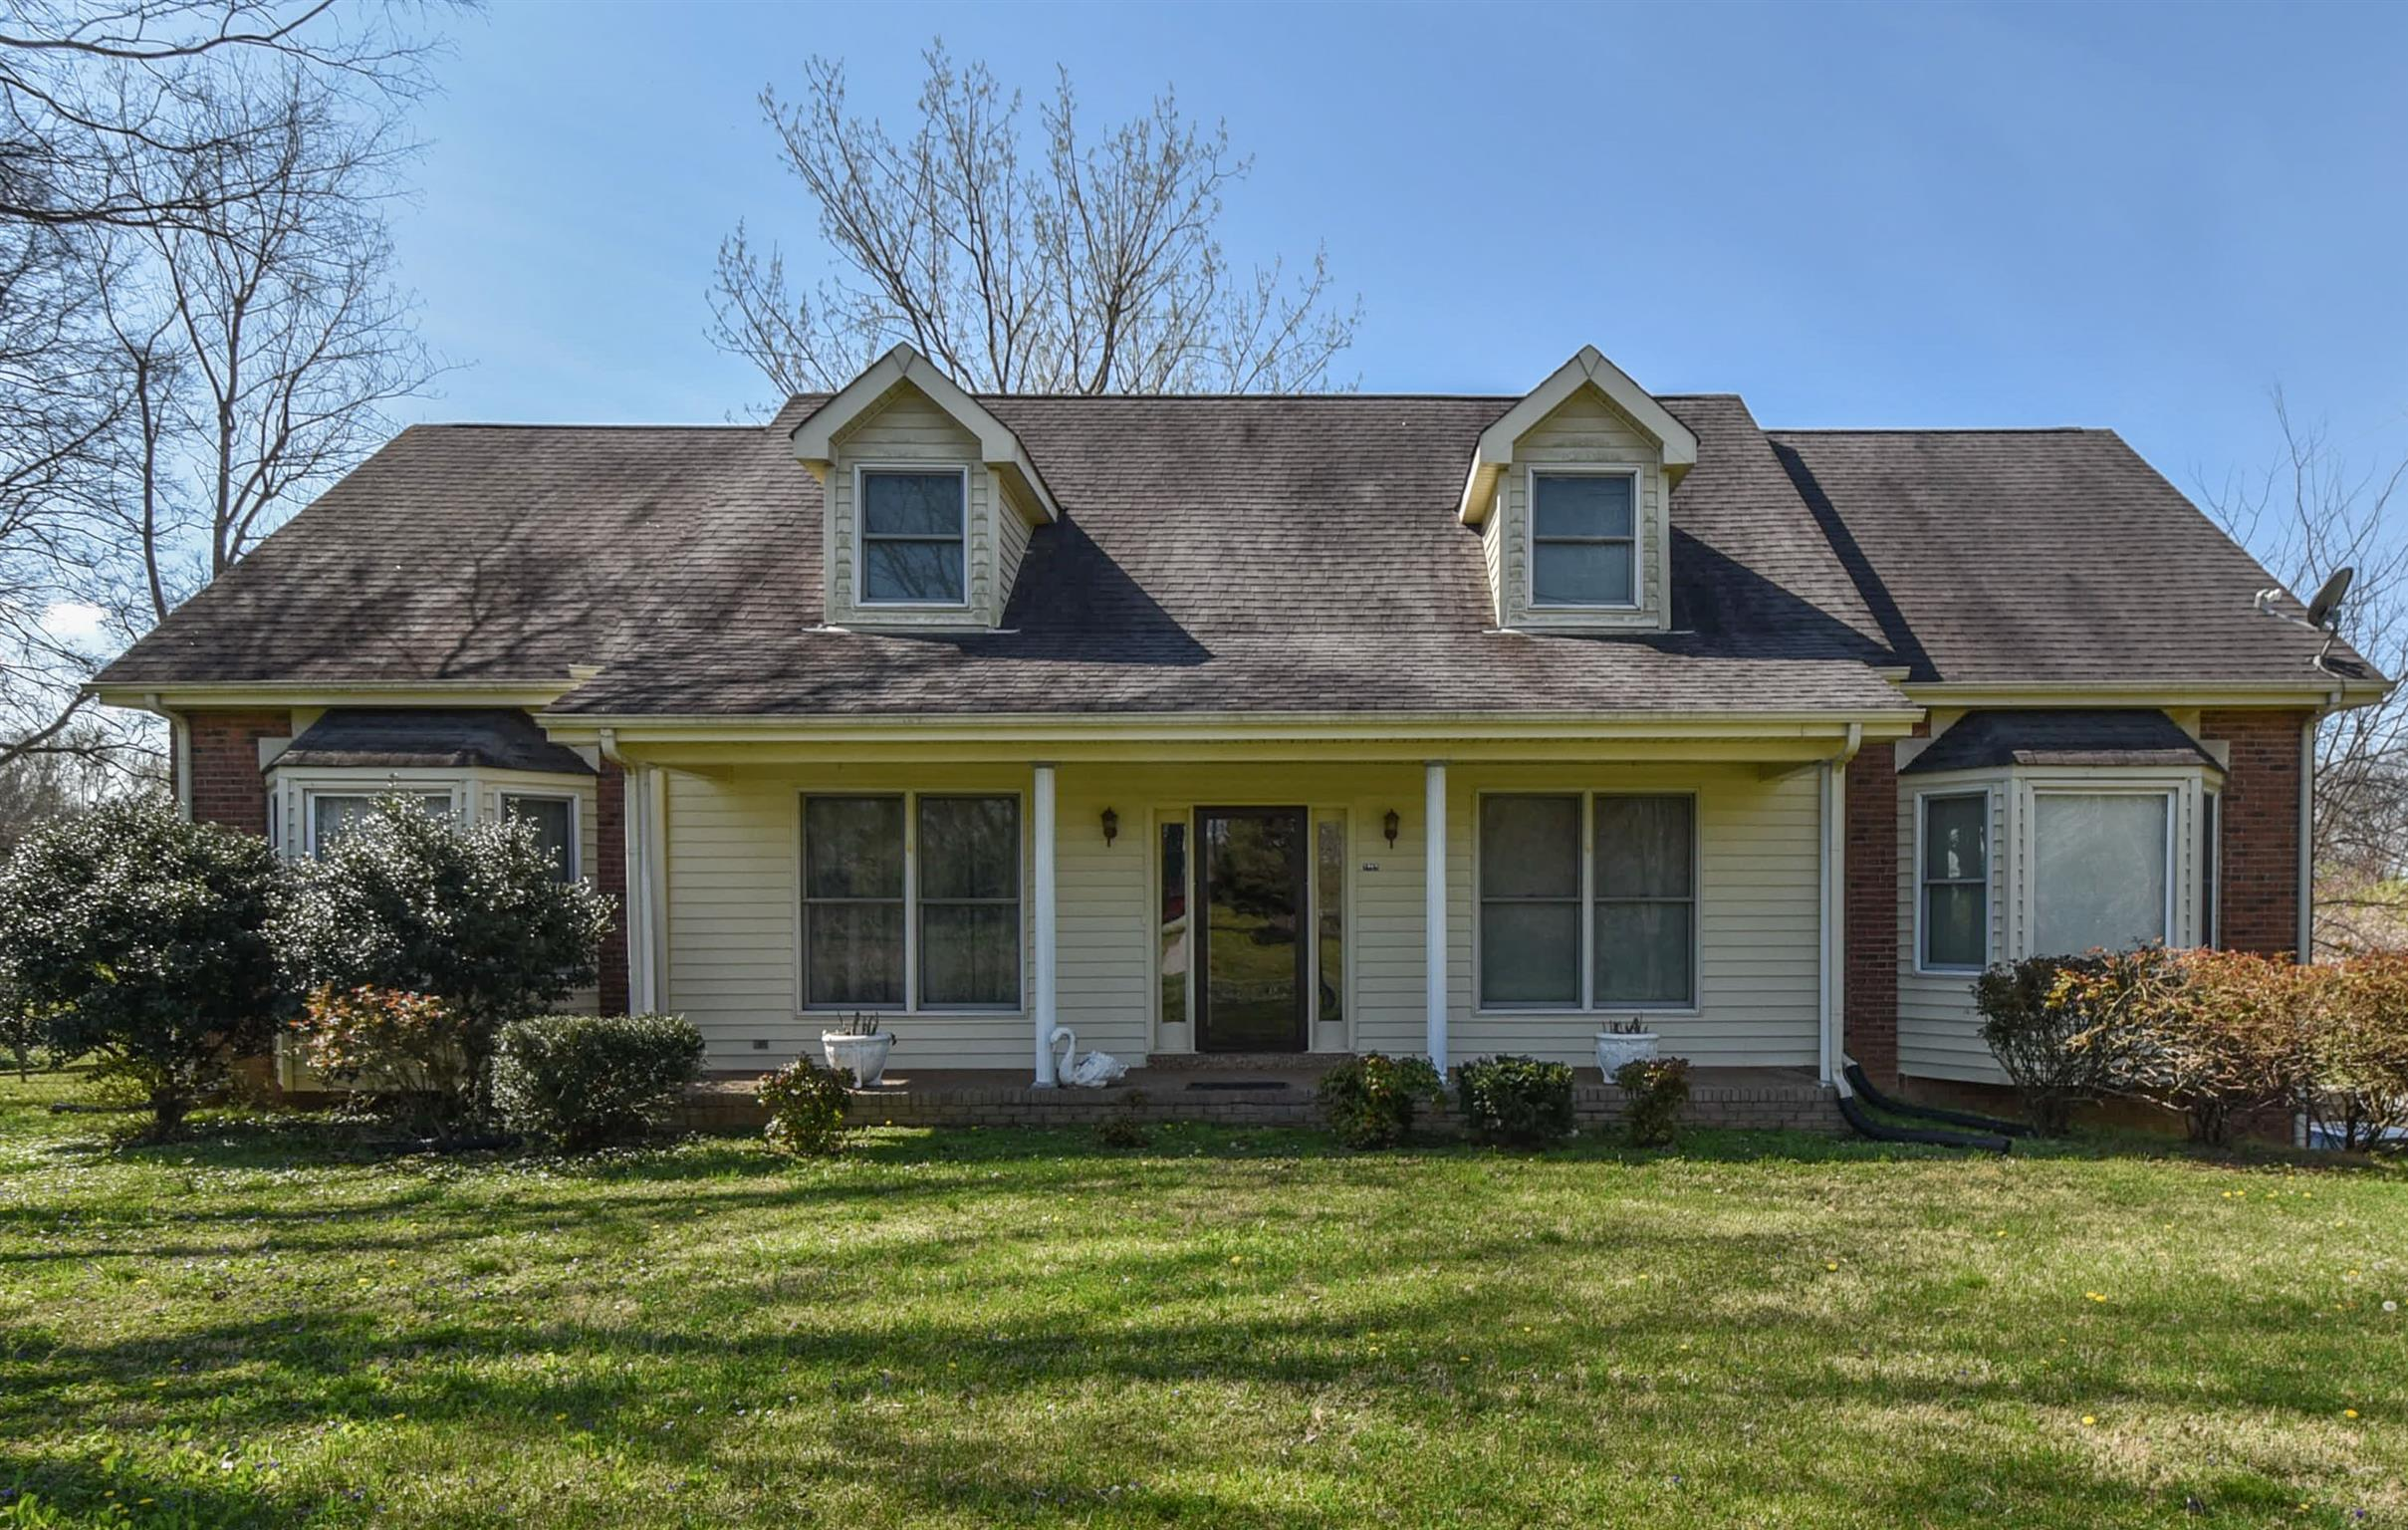 1083 Old Clarksville Pike, Pleasant View, TN 37146 - Pleasant View, TN real estate listing